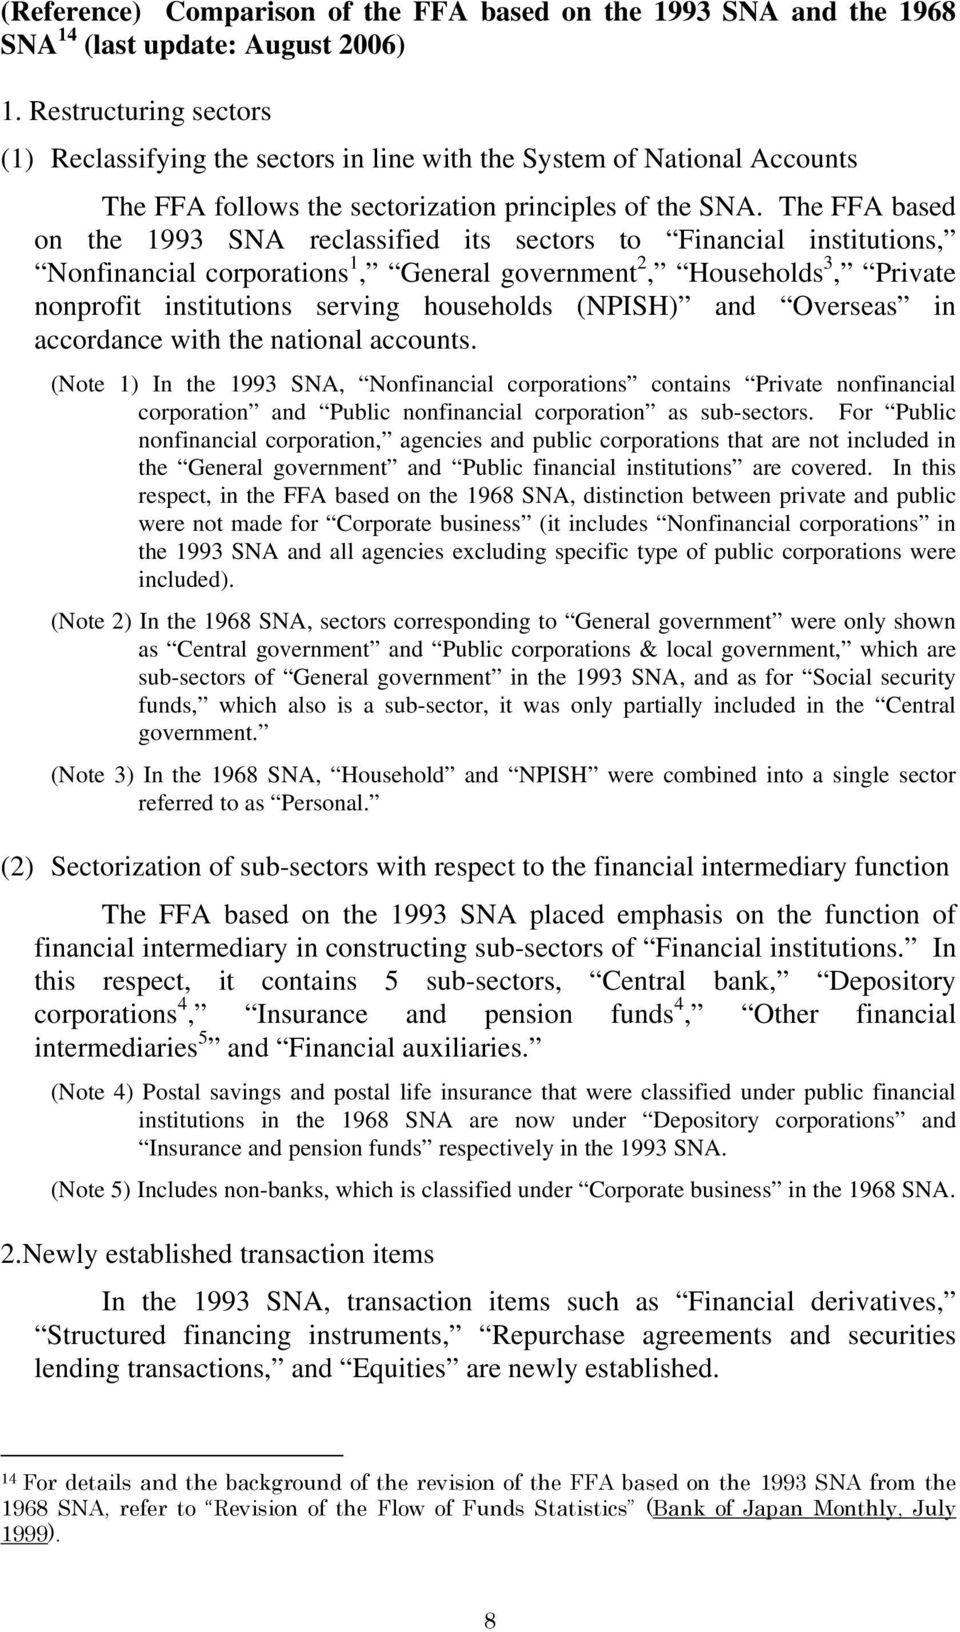 The FFA based on the 1993 SNA reclassified its sectors to Financial institutions, Nonfinancial corporations 1, General government 2, Households 3, Private nonprofit institutions serving households